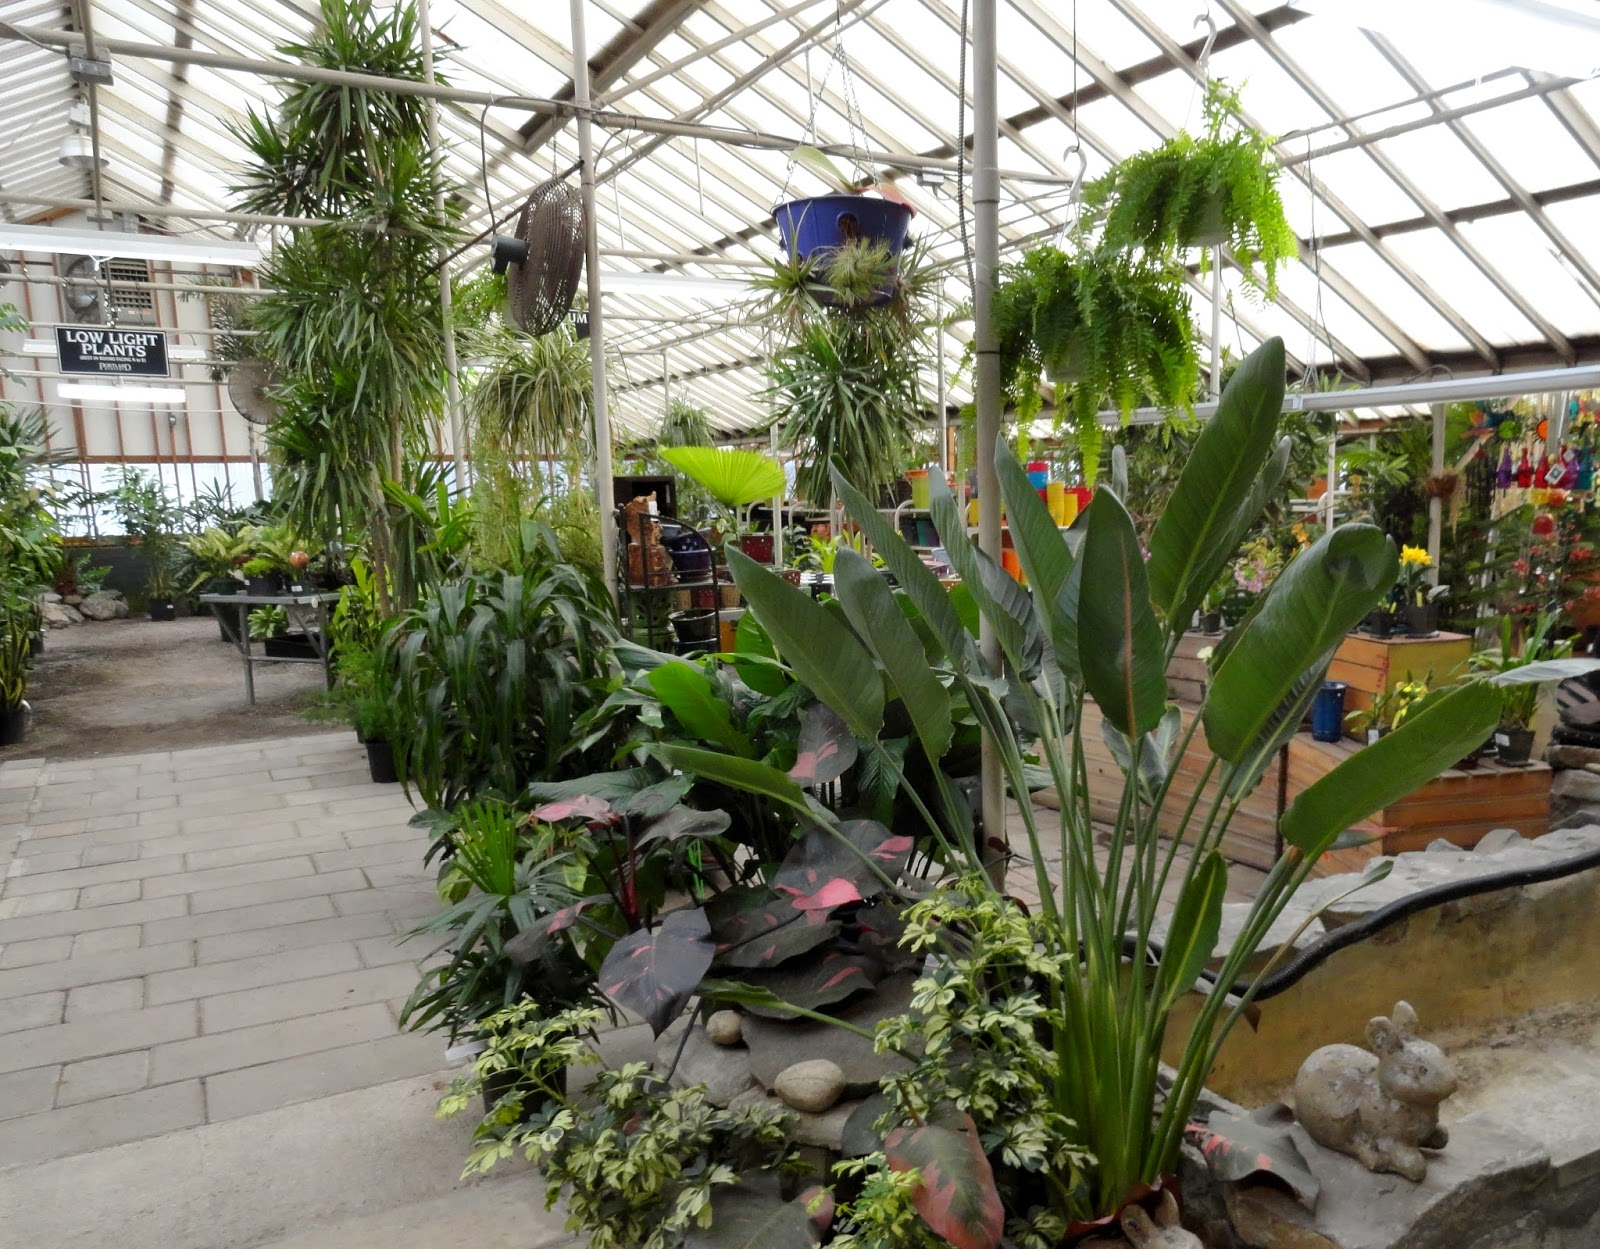 With All The Houseplants And Decorative Pottery 30 Off This Coming Weekend At Both Portland Nursery Locations It S A Great Time To Visit